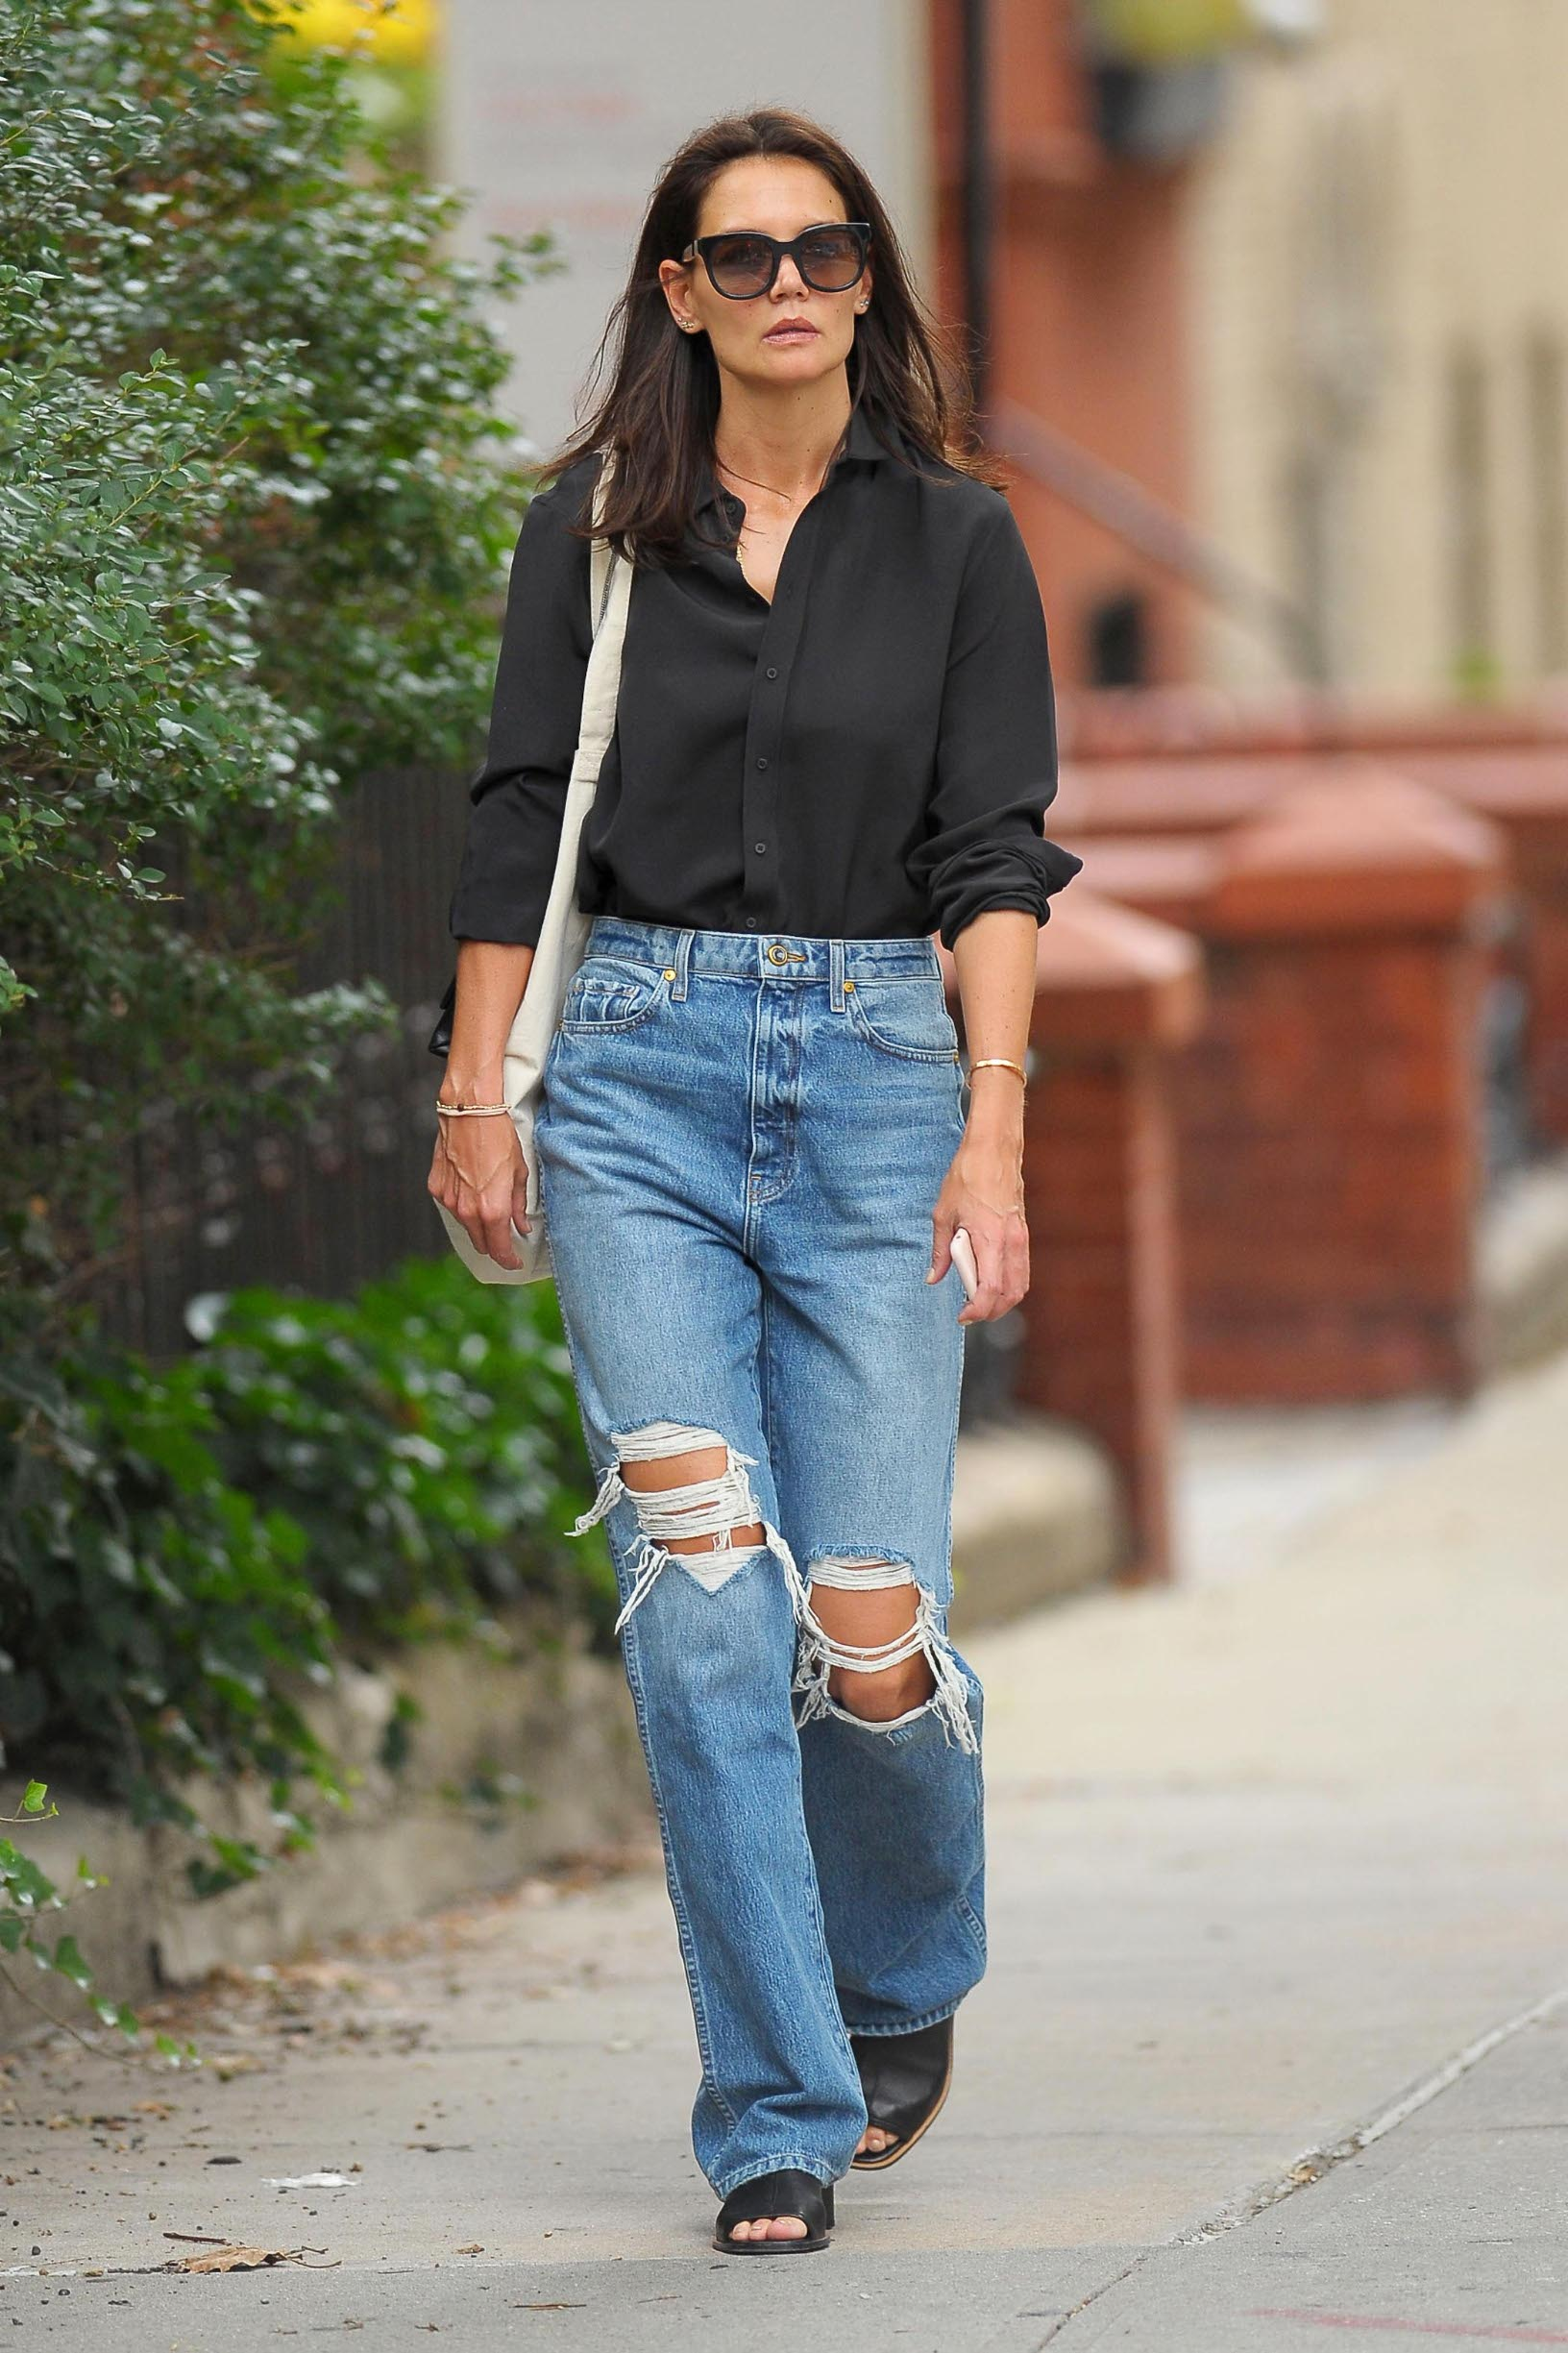 -New York, NY - 20190910- Katie Holmes Looking Happy While Walking in Manhattan  -PICTURED: Katie Holmes -, Image: 470165273, License: Rights-managed, Restrictions: , Model Release: no, Credit line: Profimedia, INSTAR Images